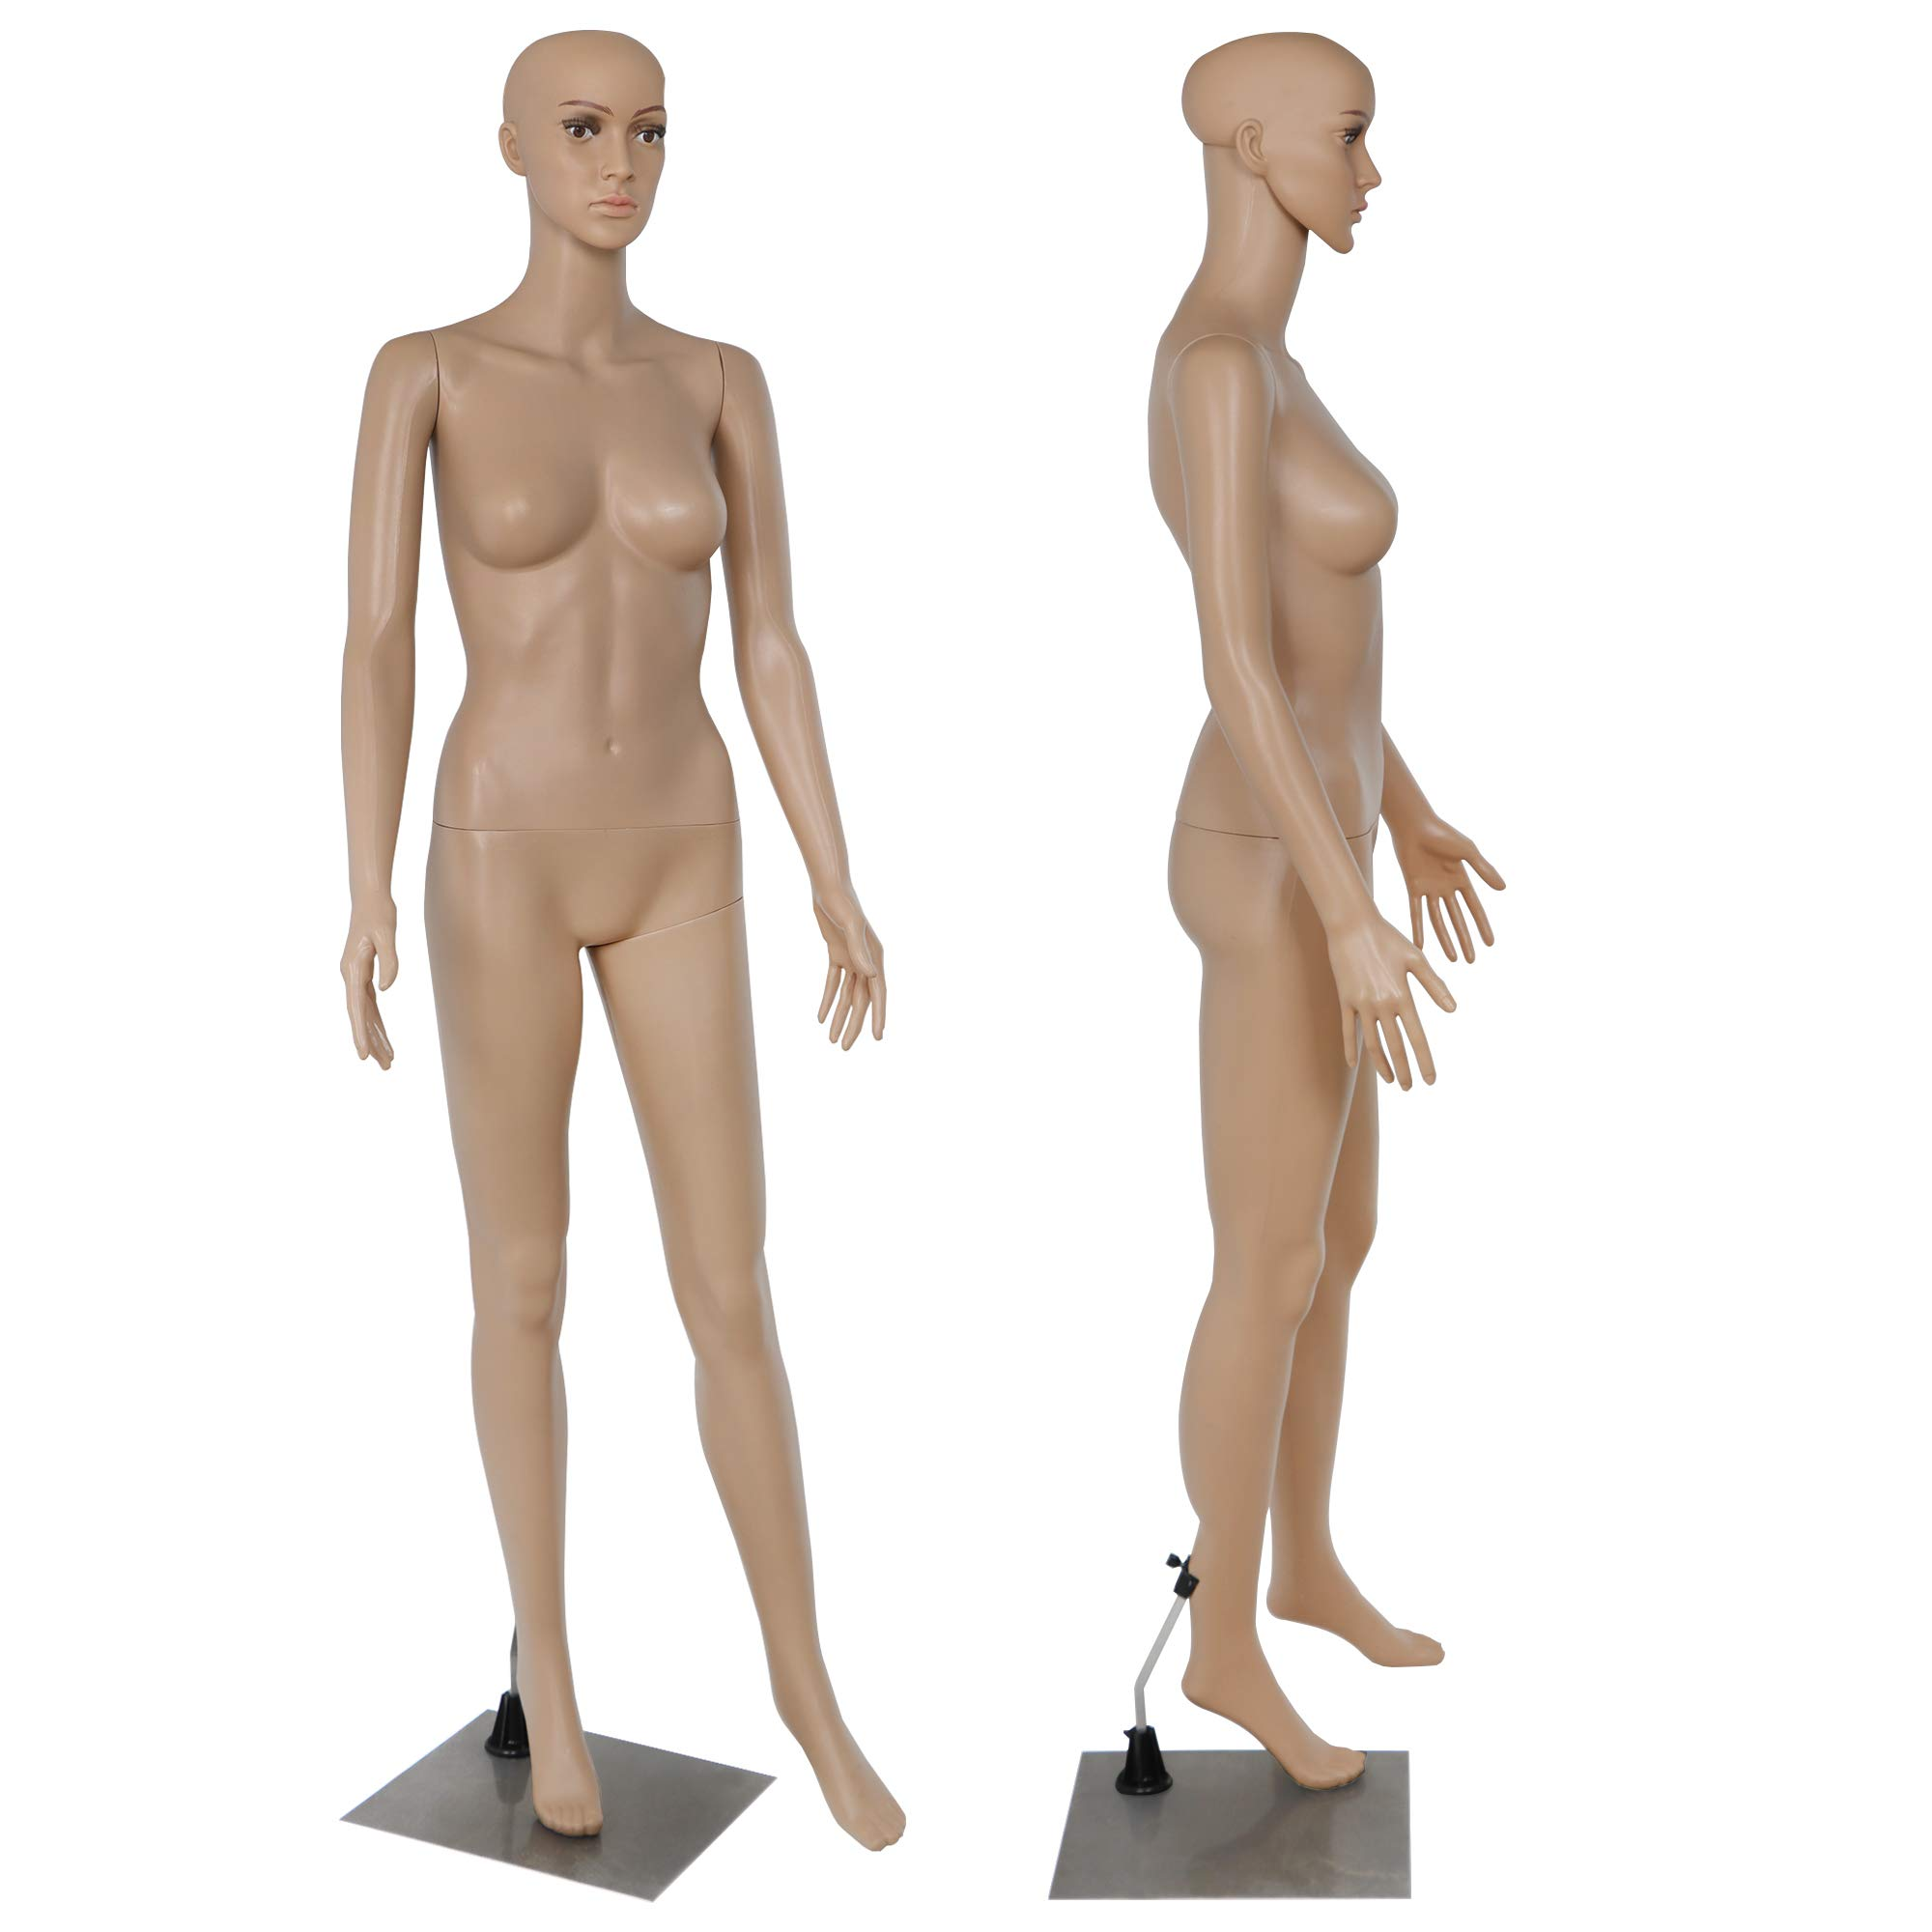 ZENY Full Body 68.9'' Height Realistic Female Mannequin Display Head Turns Dress Form w/Base, Detachable Plastic Slapped Adjustable Dressmaker Dummy Standing Adult Plastic Mannequin by ZENY